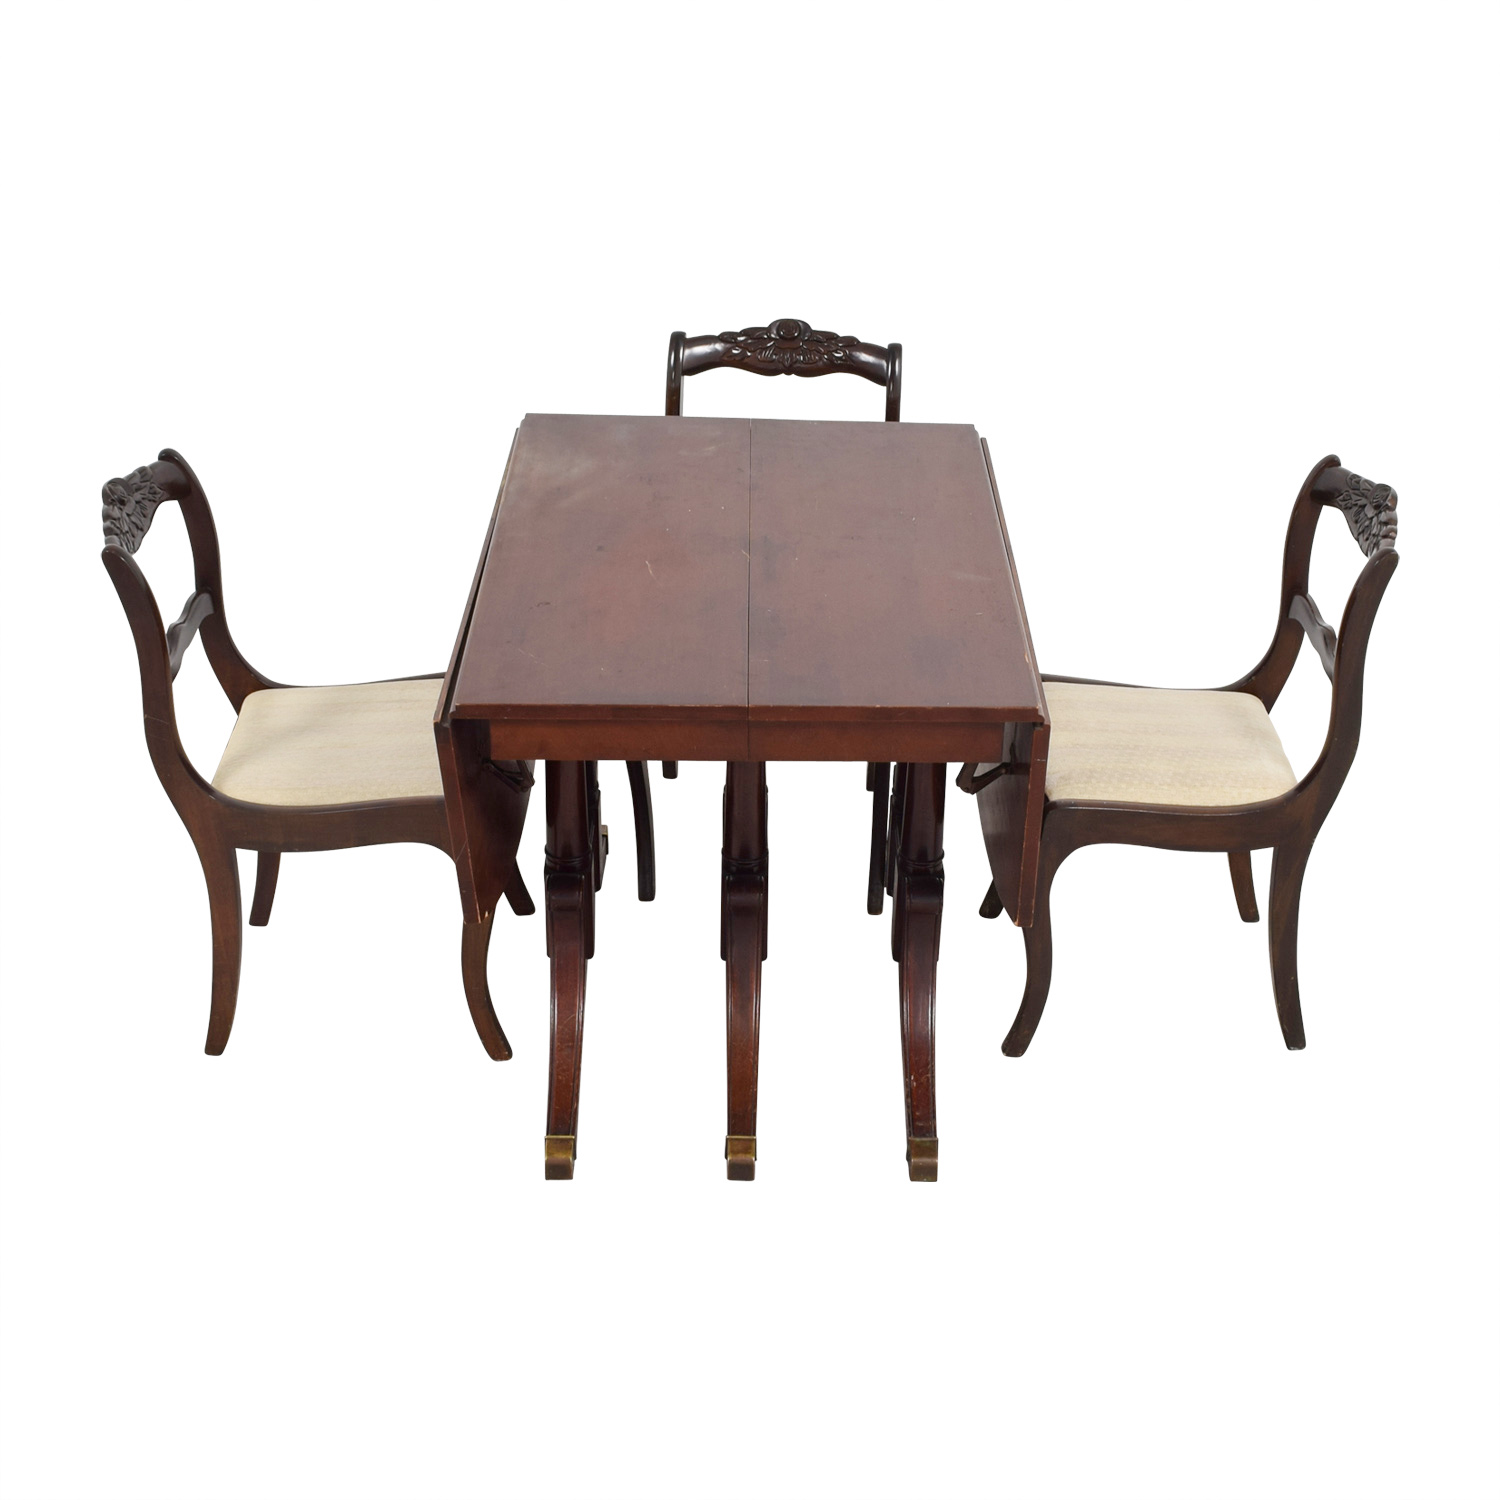 Extendable Folding Leaves Dining Set Brown / Dark Brown / Cream